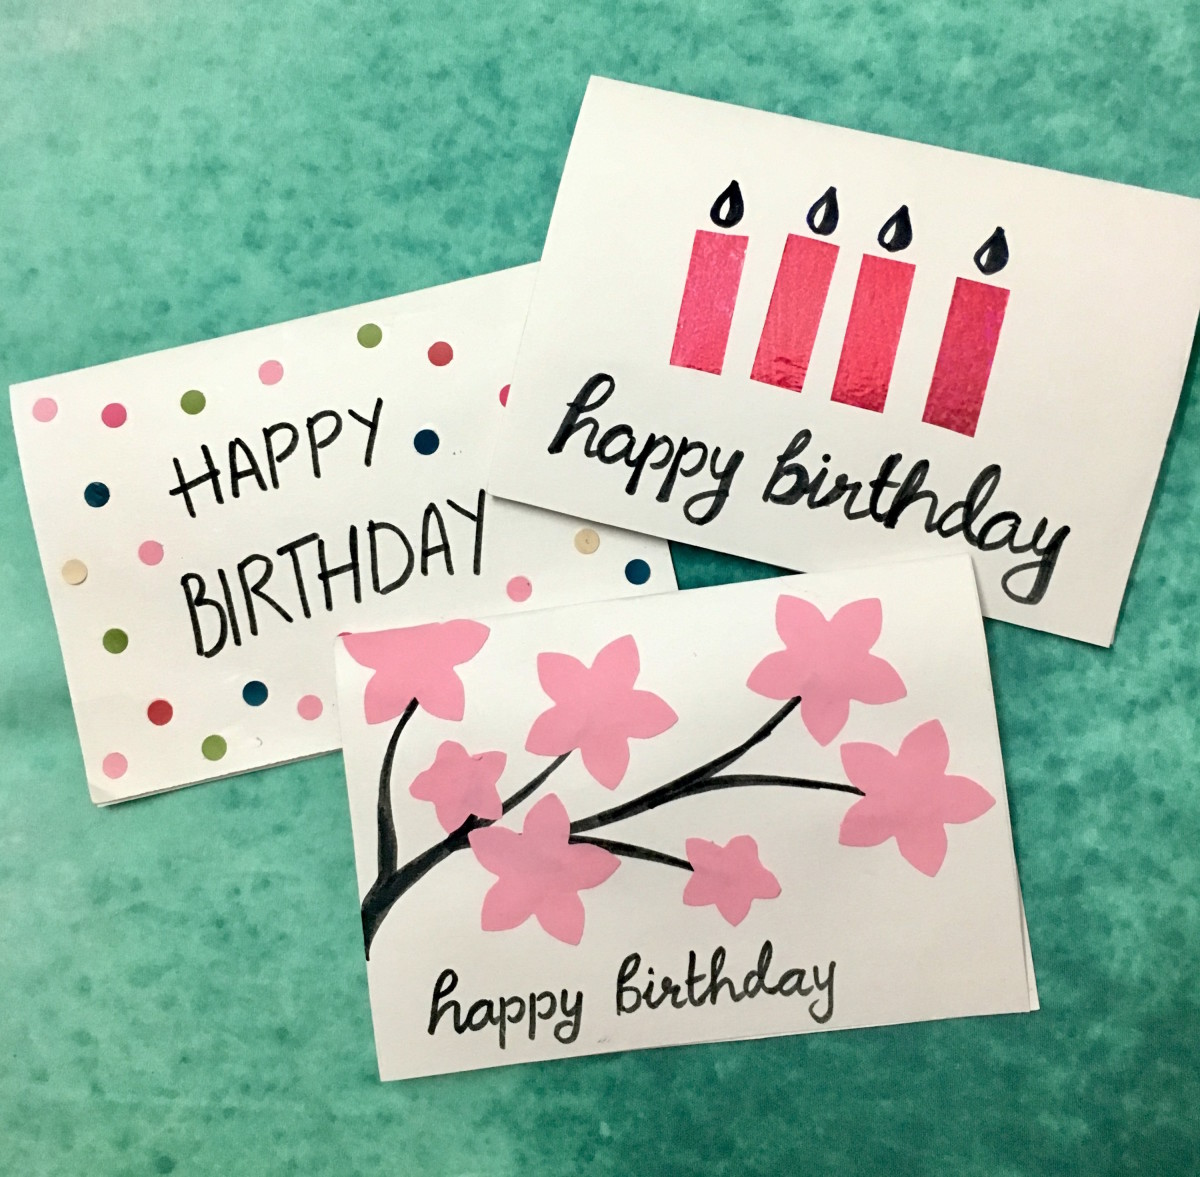 3 Easy 5 Minute DIY Birthday Greeting Cards